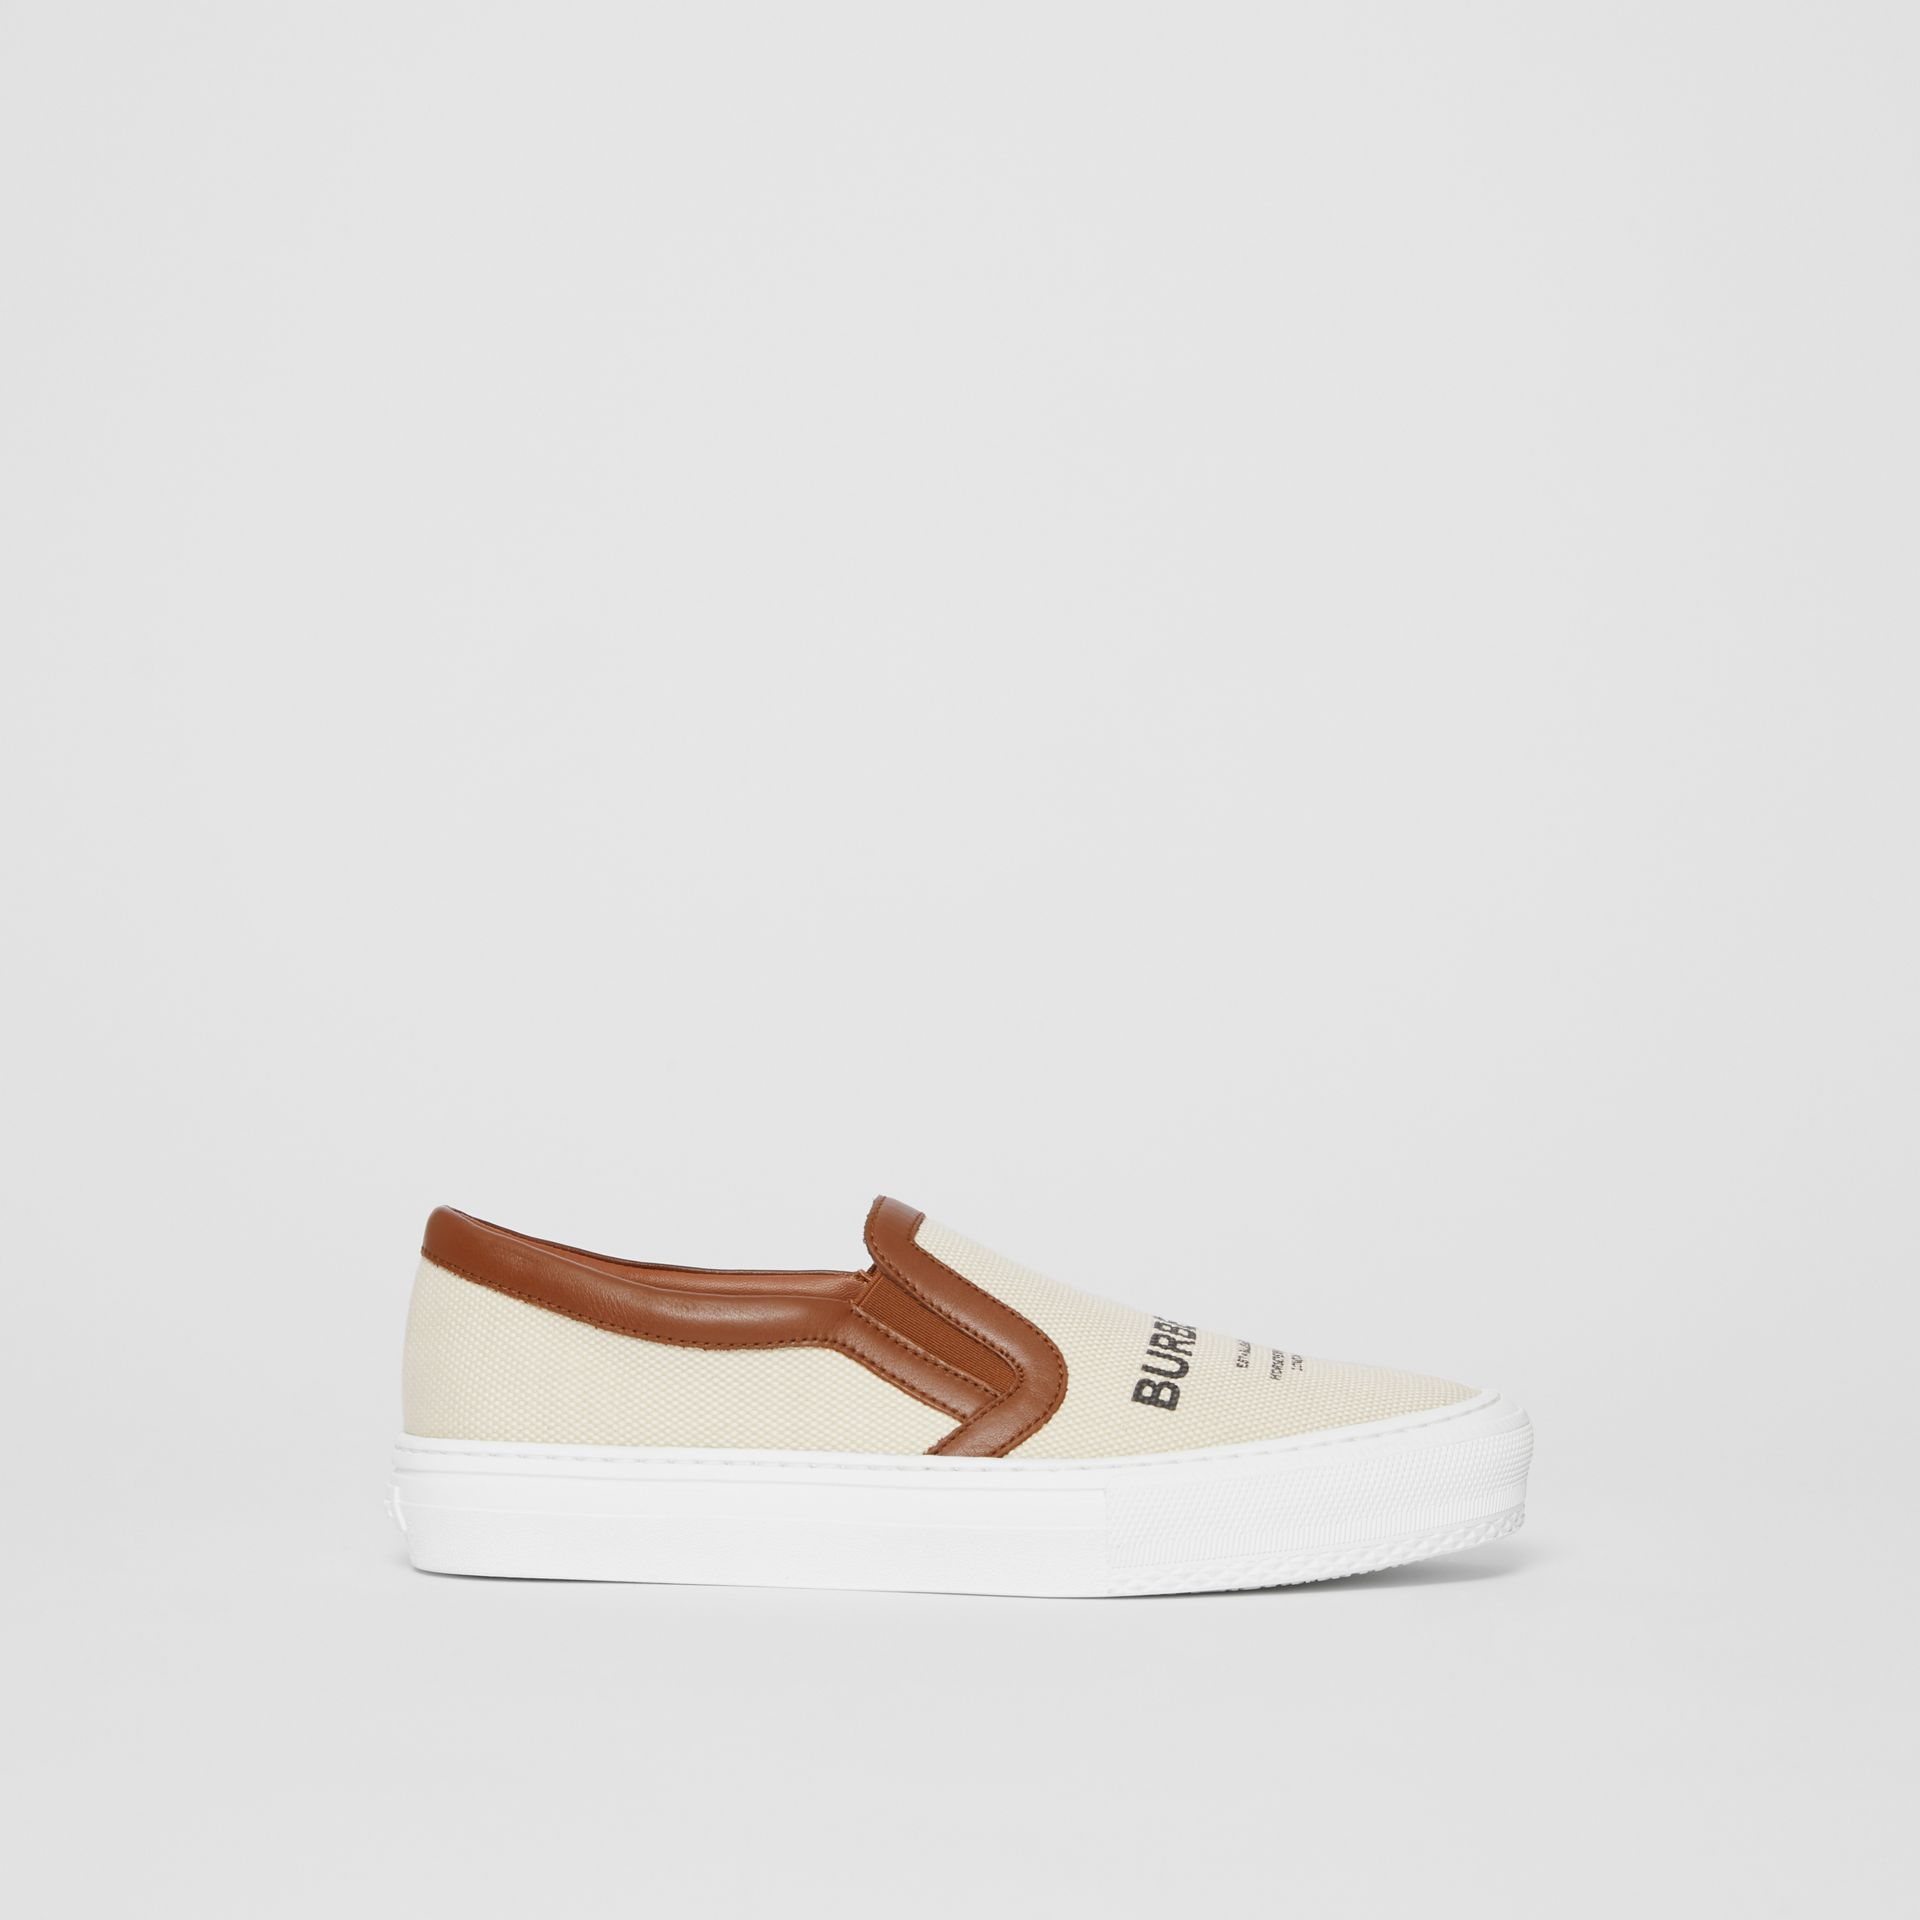 Horseferry Print Cotton and Leather Slip-on Sneakers in Malt Brown - Women | Burberry - gallery image 5